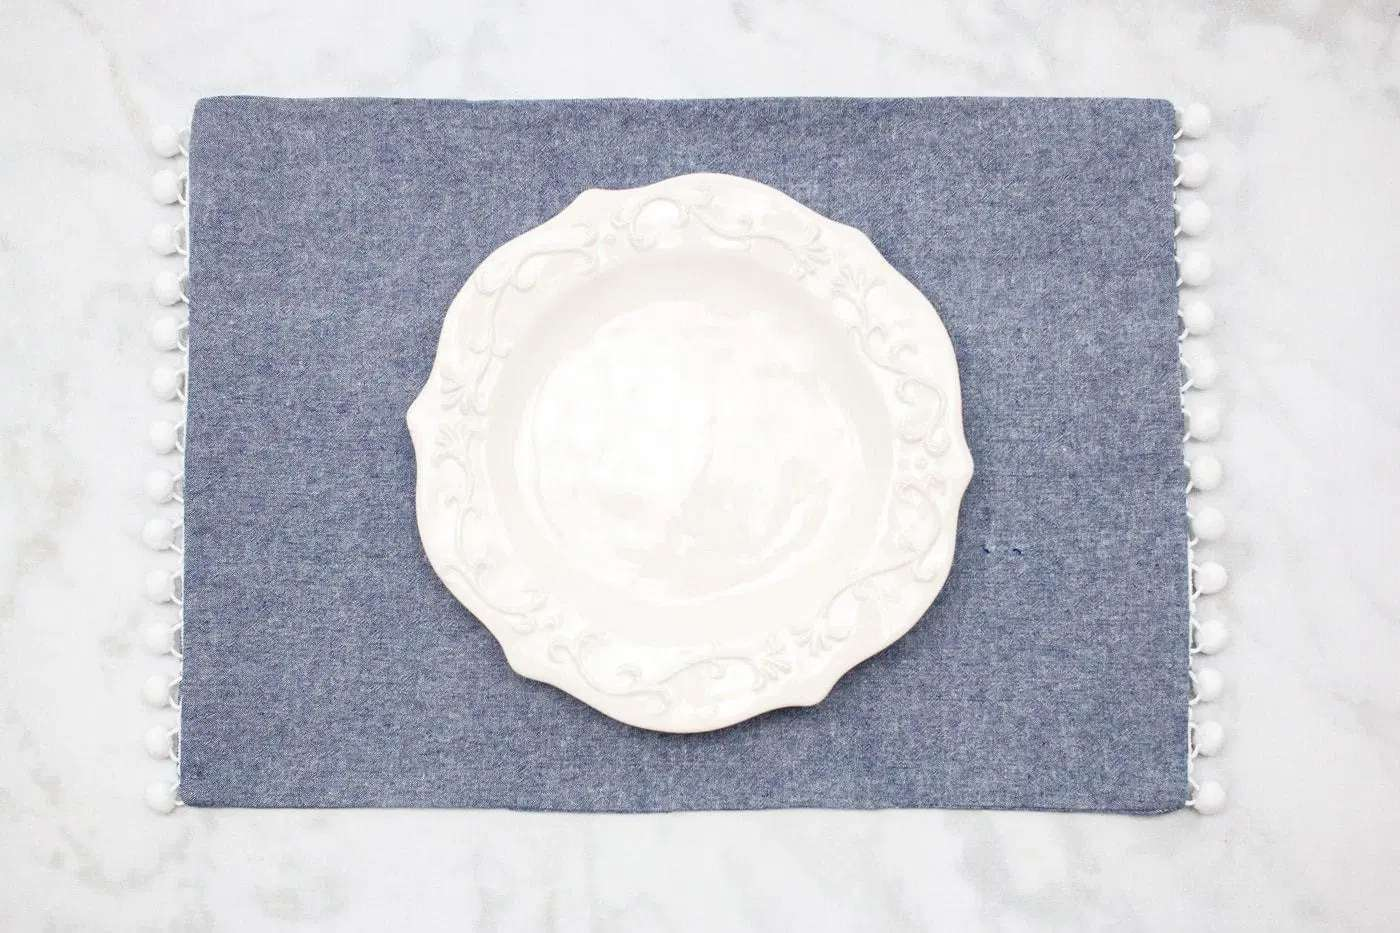 A blue place mat with white trim